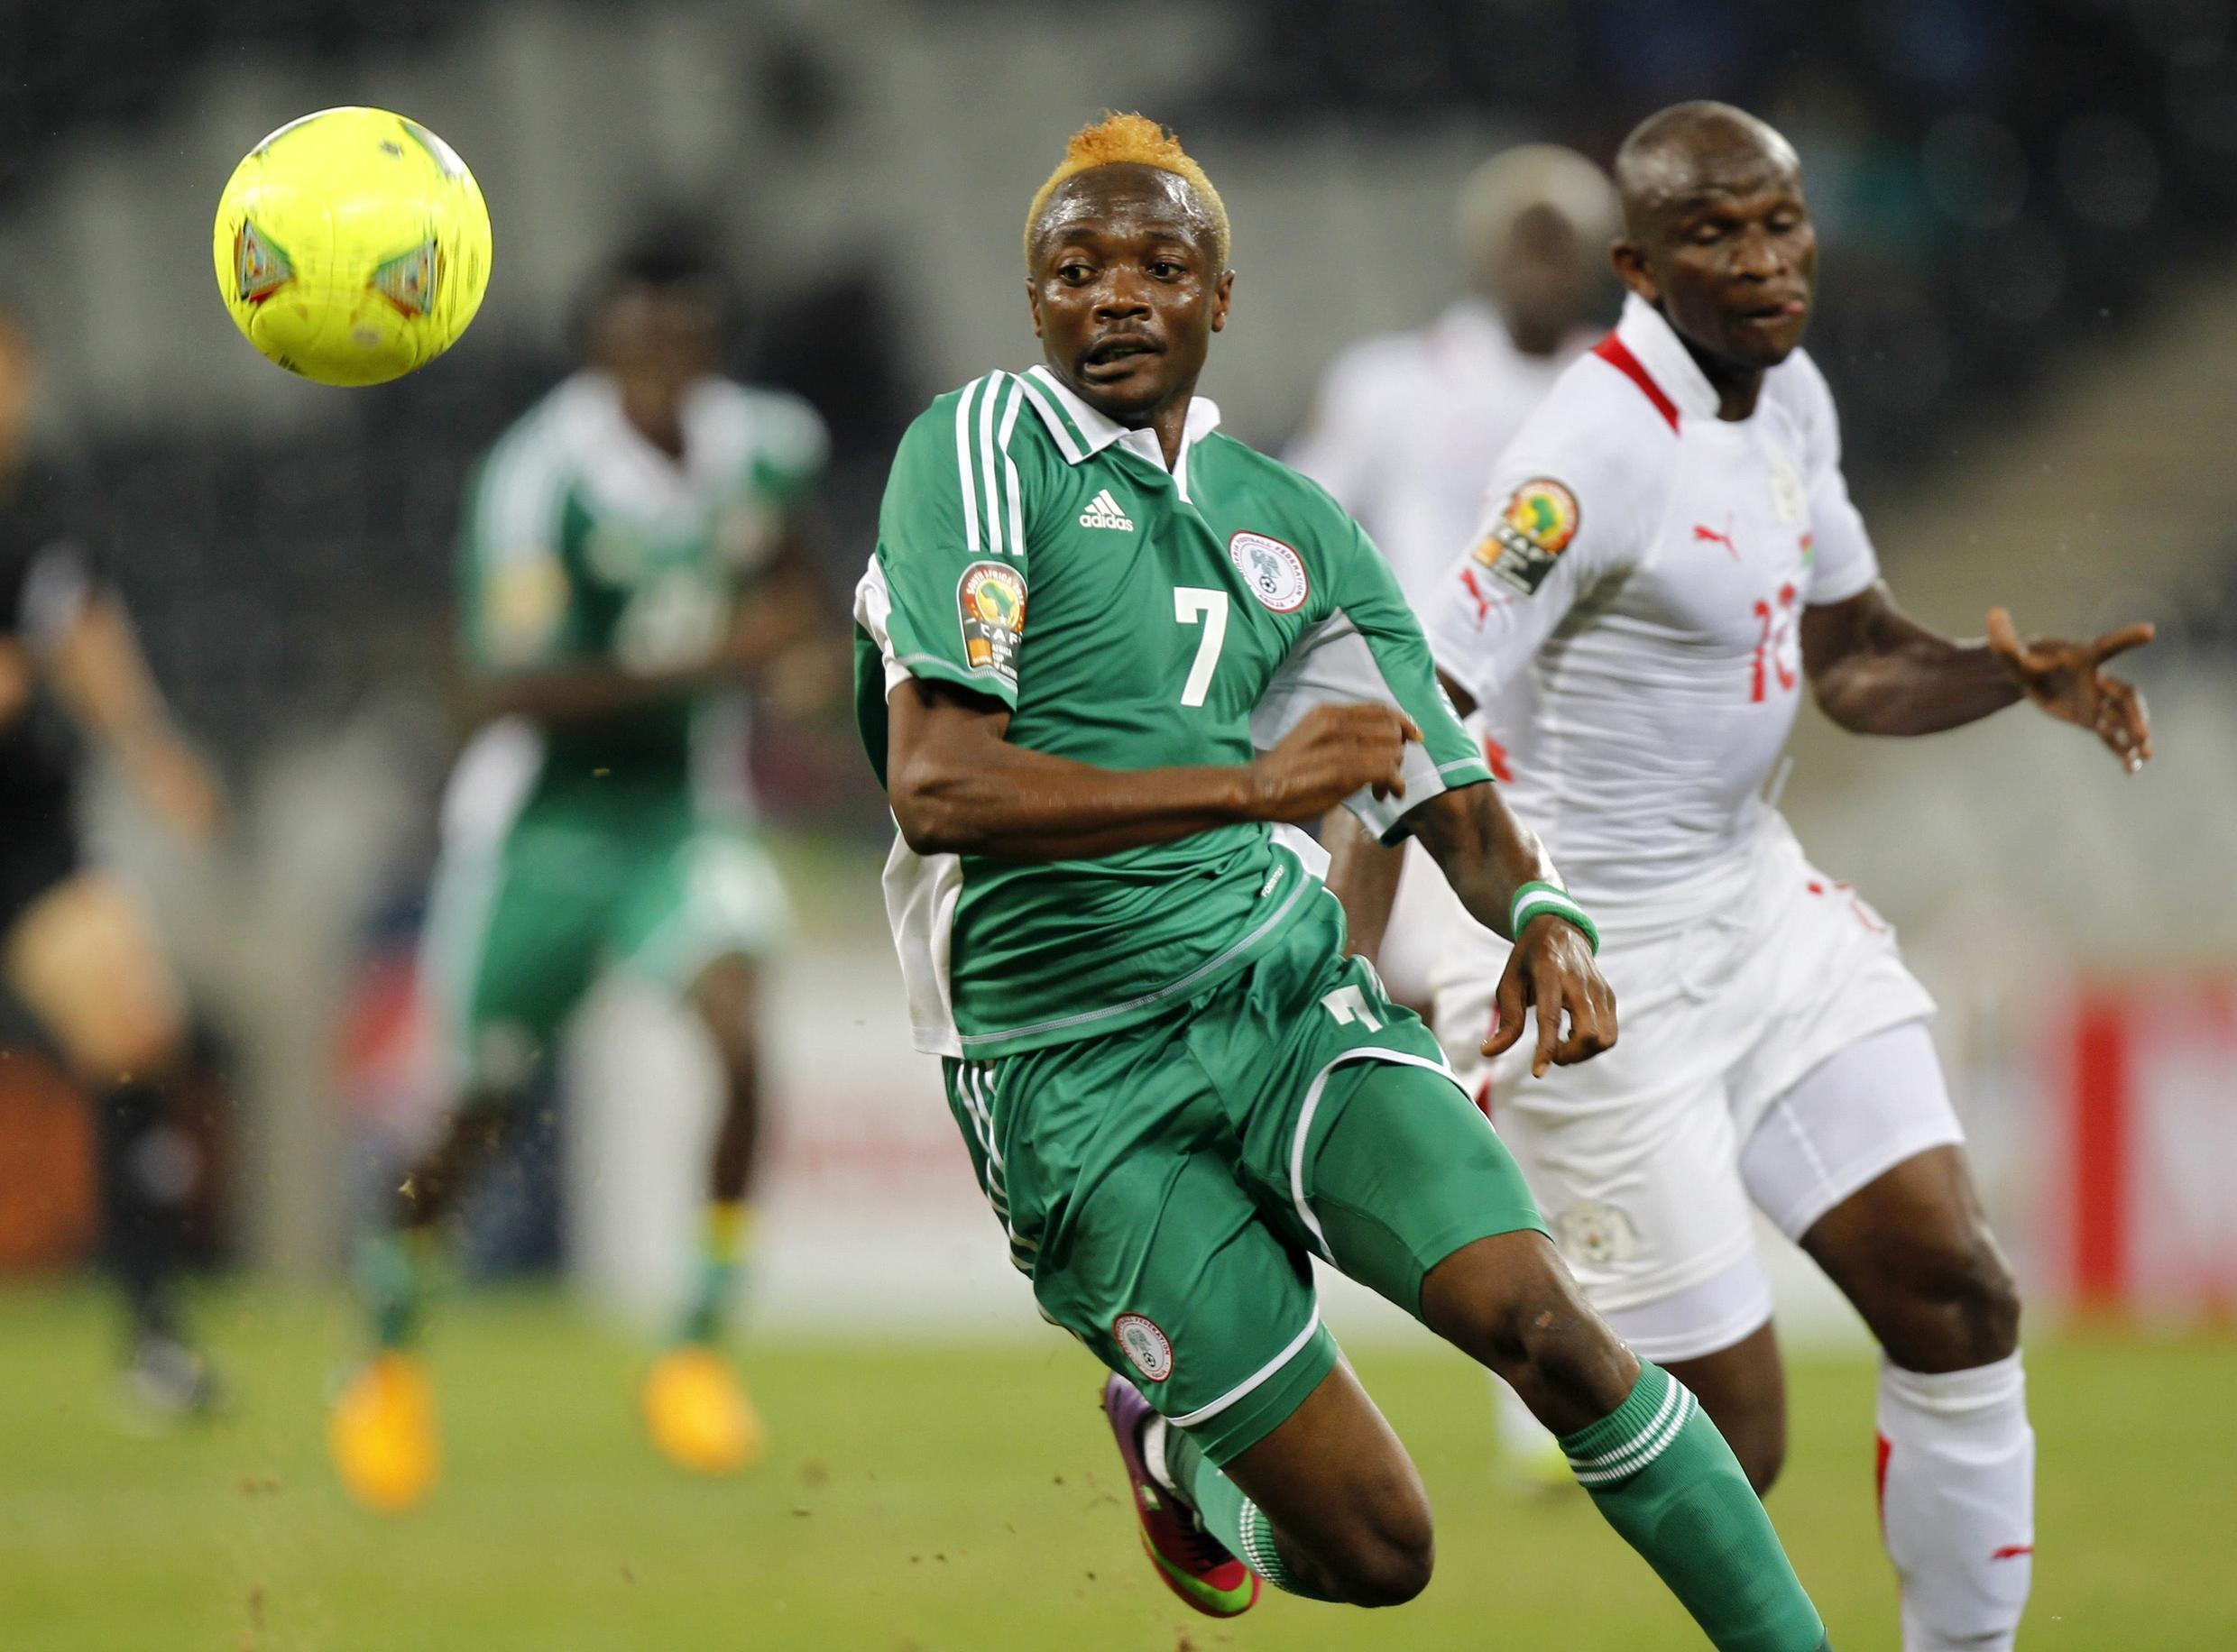 Nigeria's Ahmed Musa and Burkina Faso's Mady Panandetiguiri (R) during their match in Nelspruit, 21 January